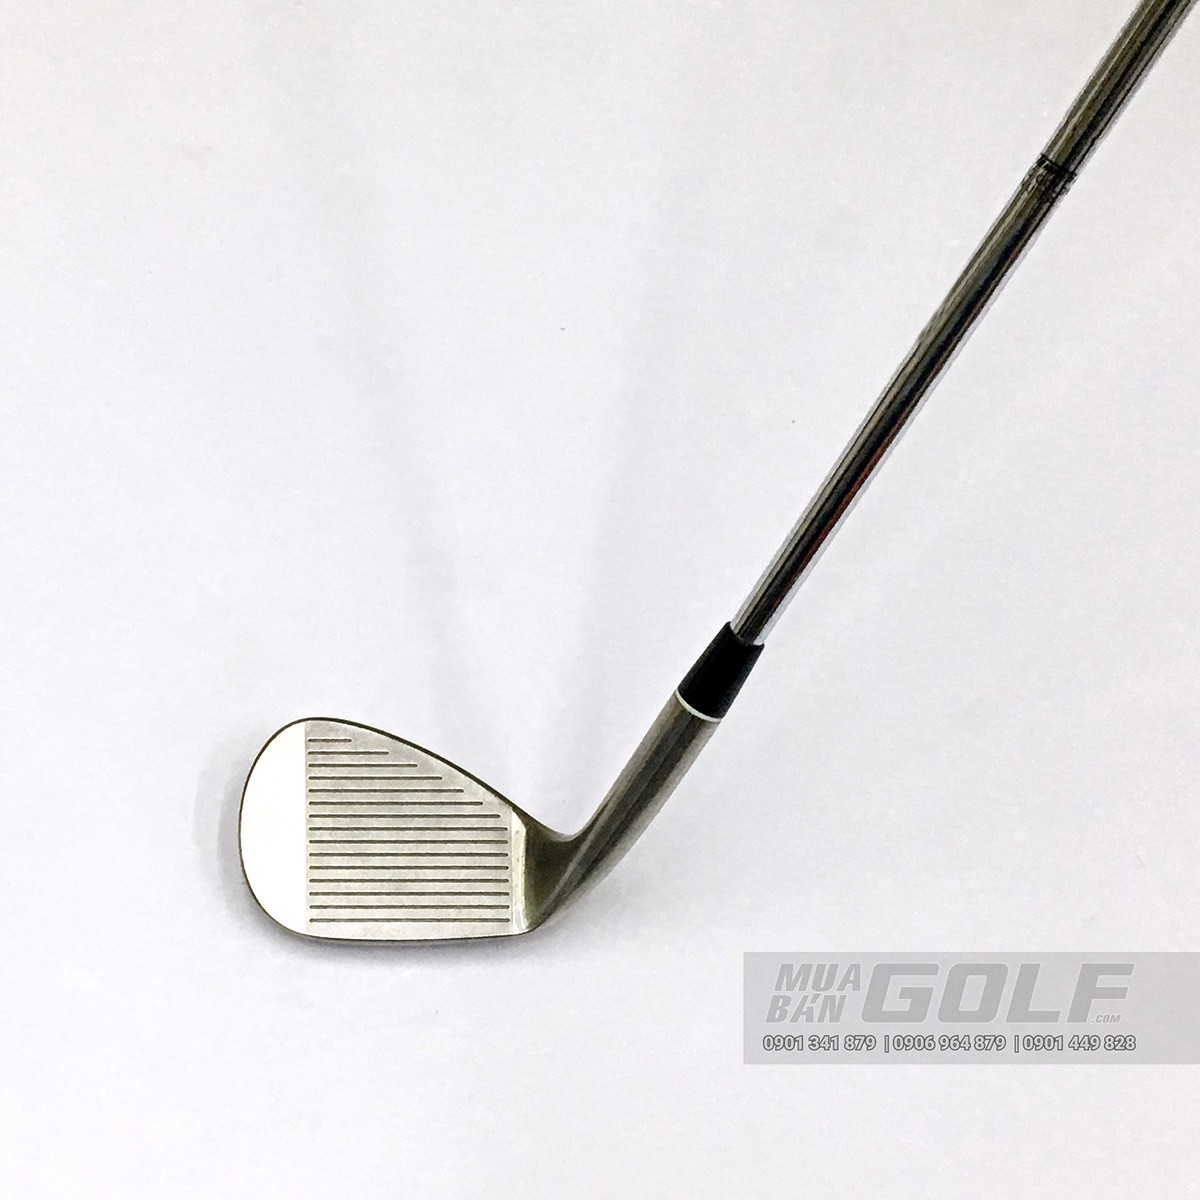 Gậy golf Wedge cũ FOURTEEN MT 28 V5 LOFT 52 08 SCW FT13